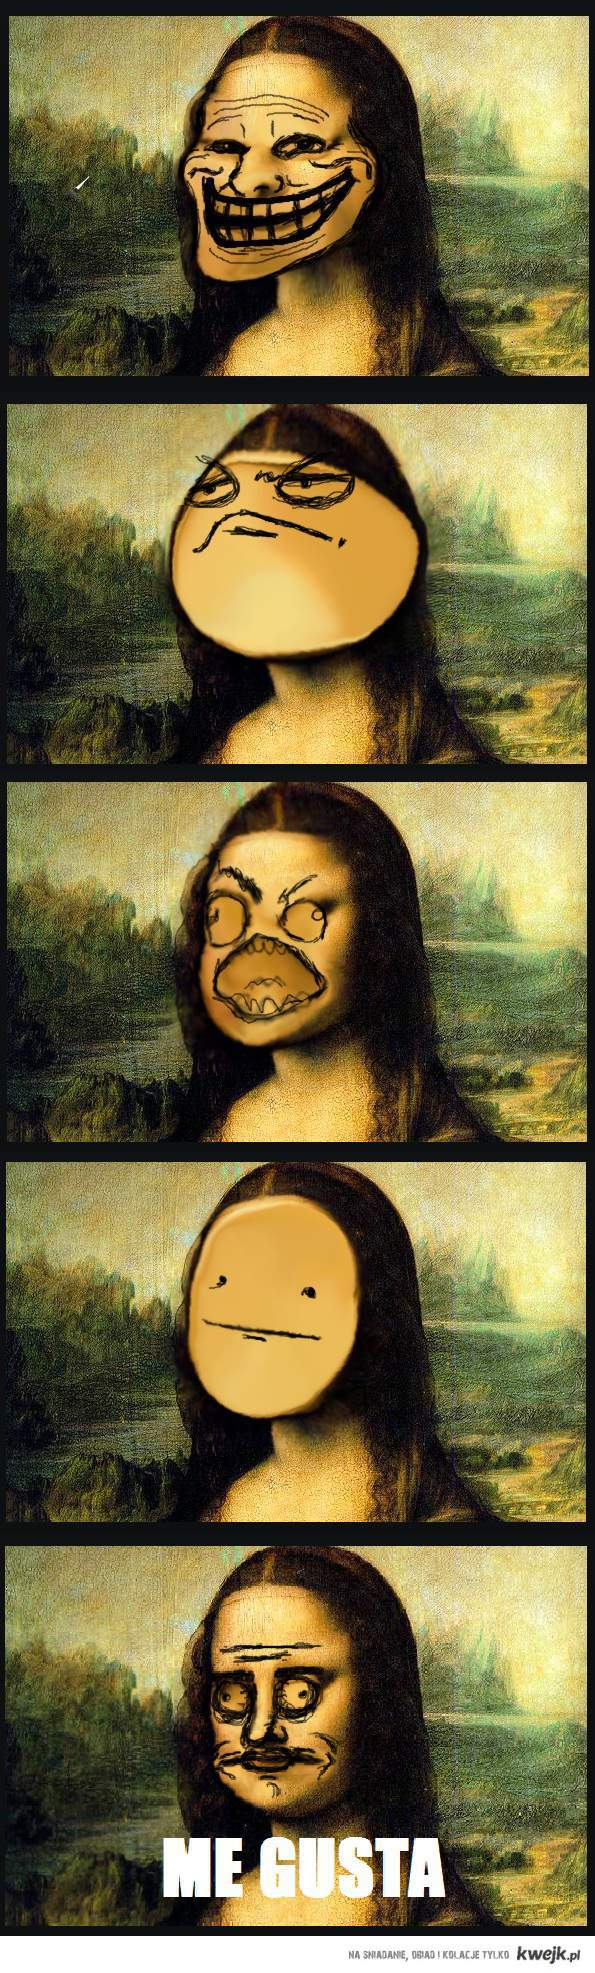 mona lisa faces